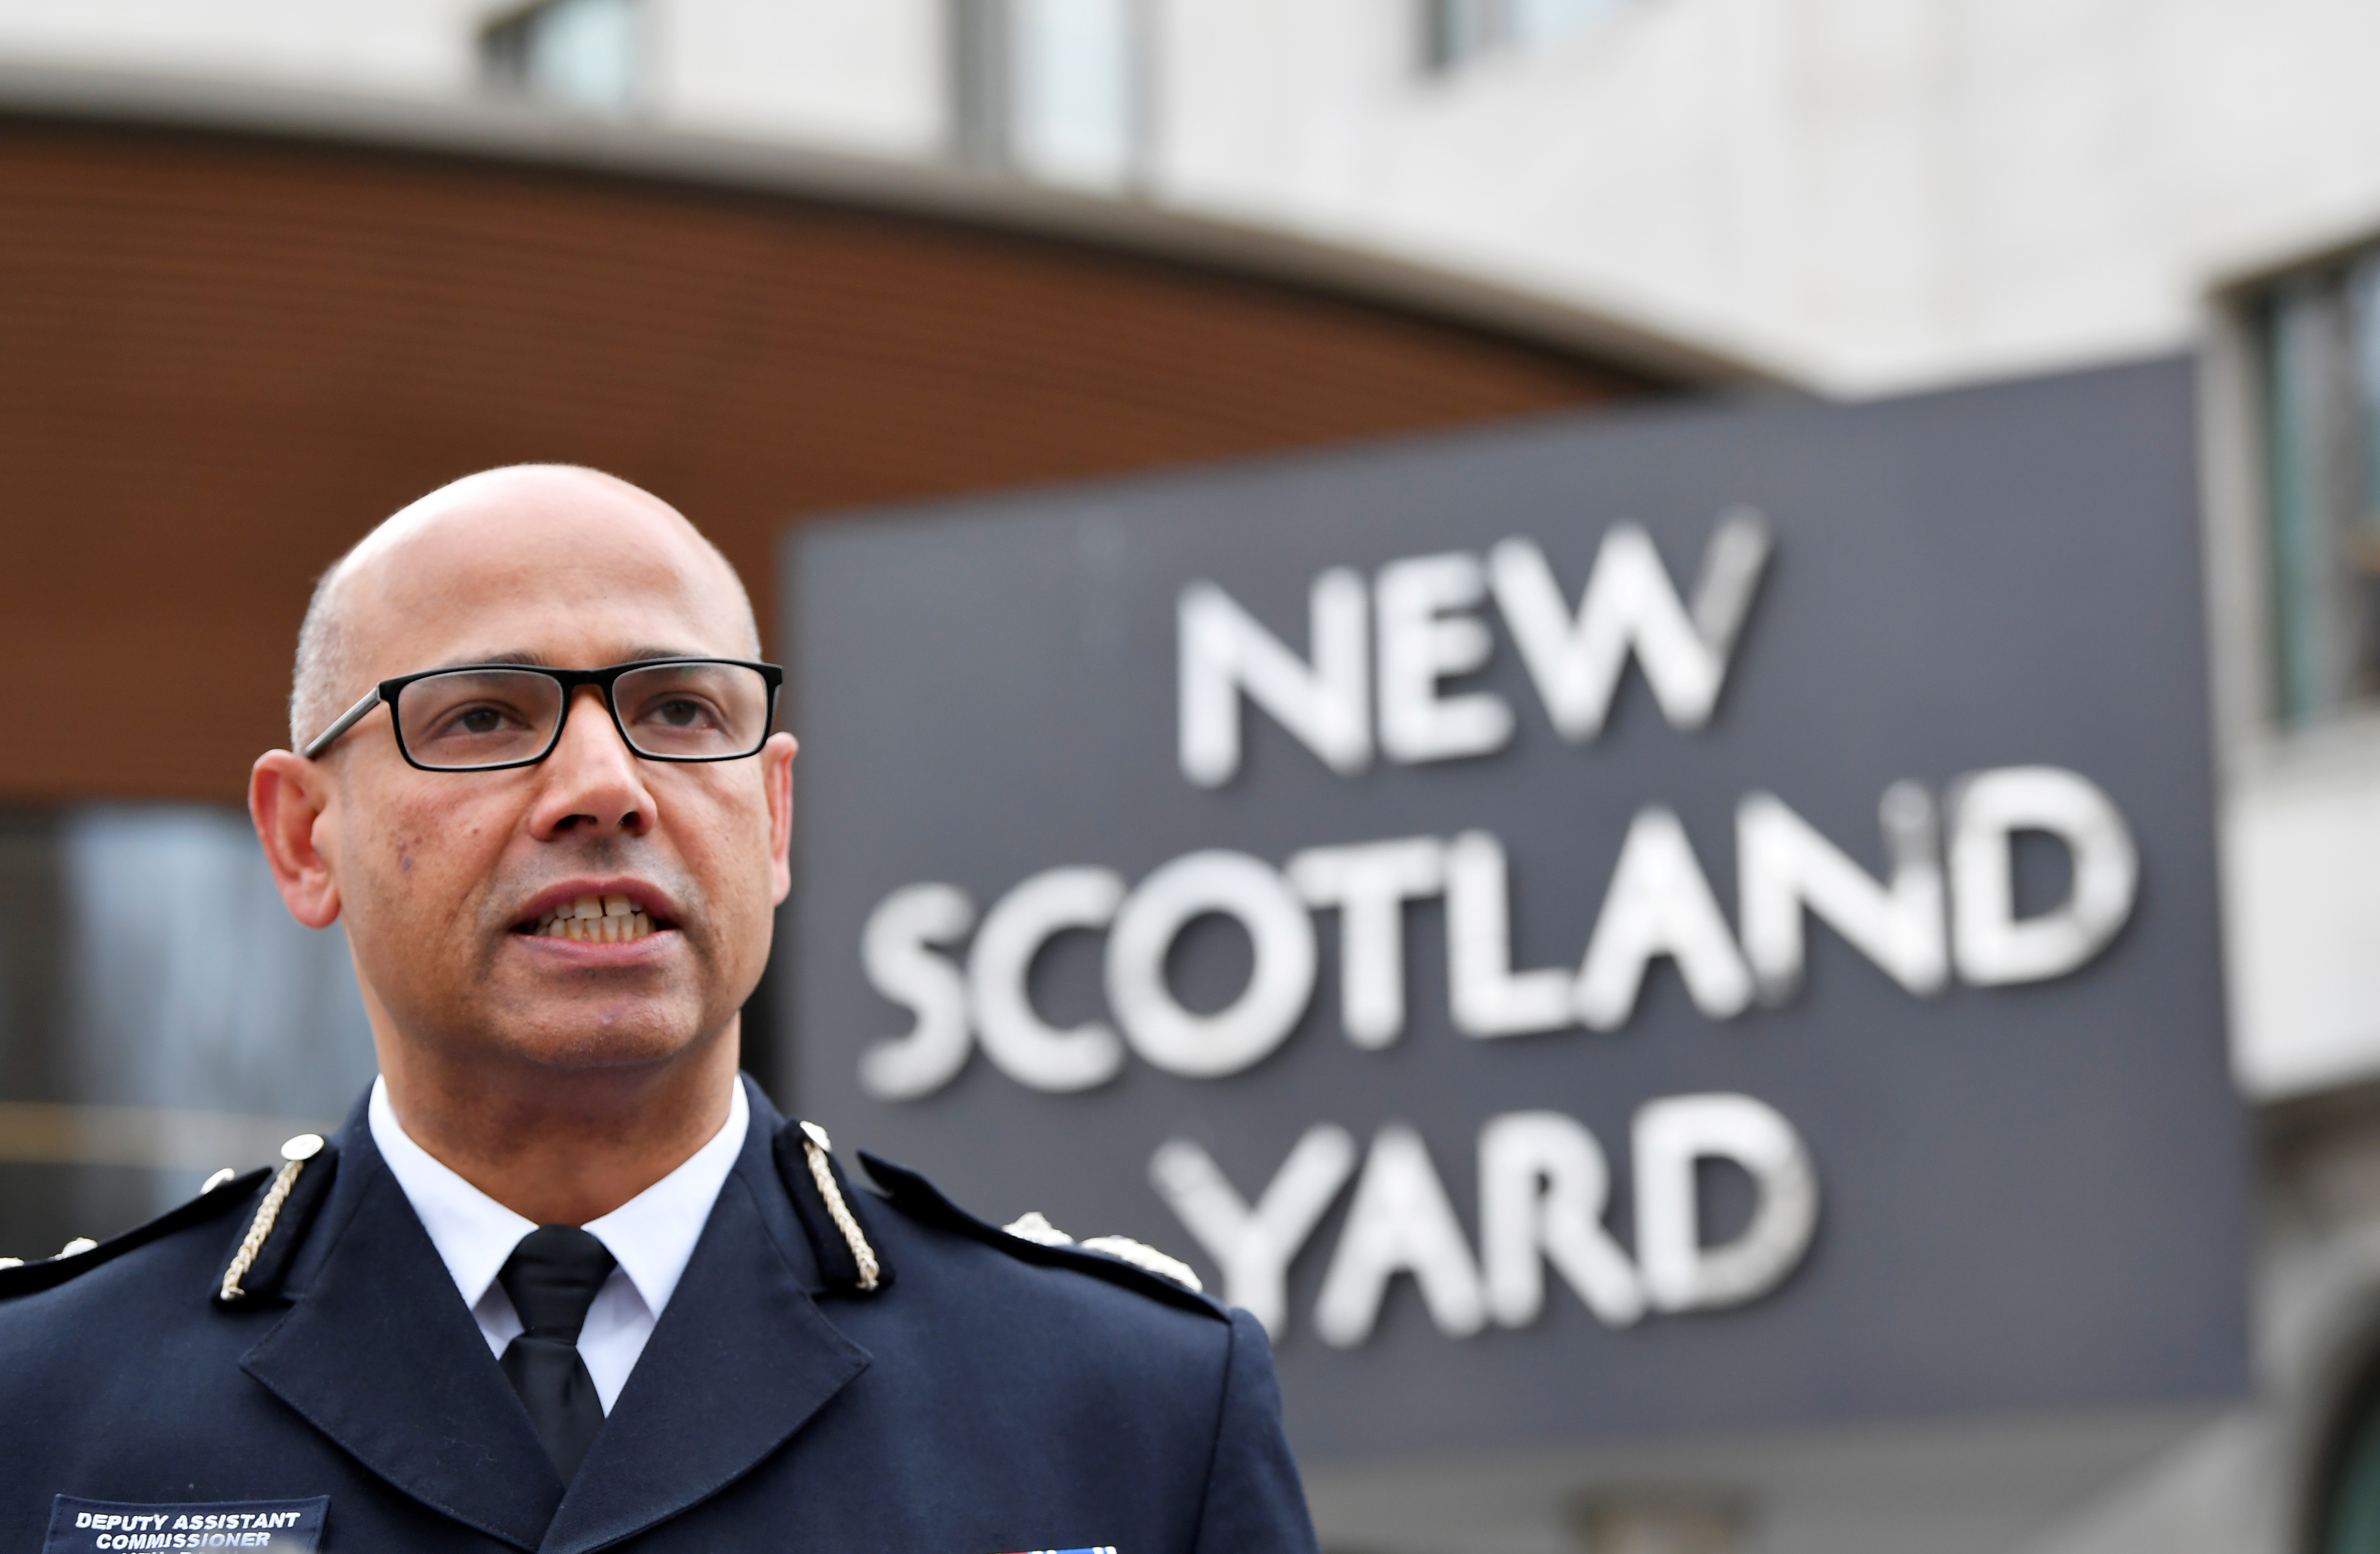 Right-Wing Extremism Fastest Growing Threat in the UK, Counter-Terror Chief Warns